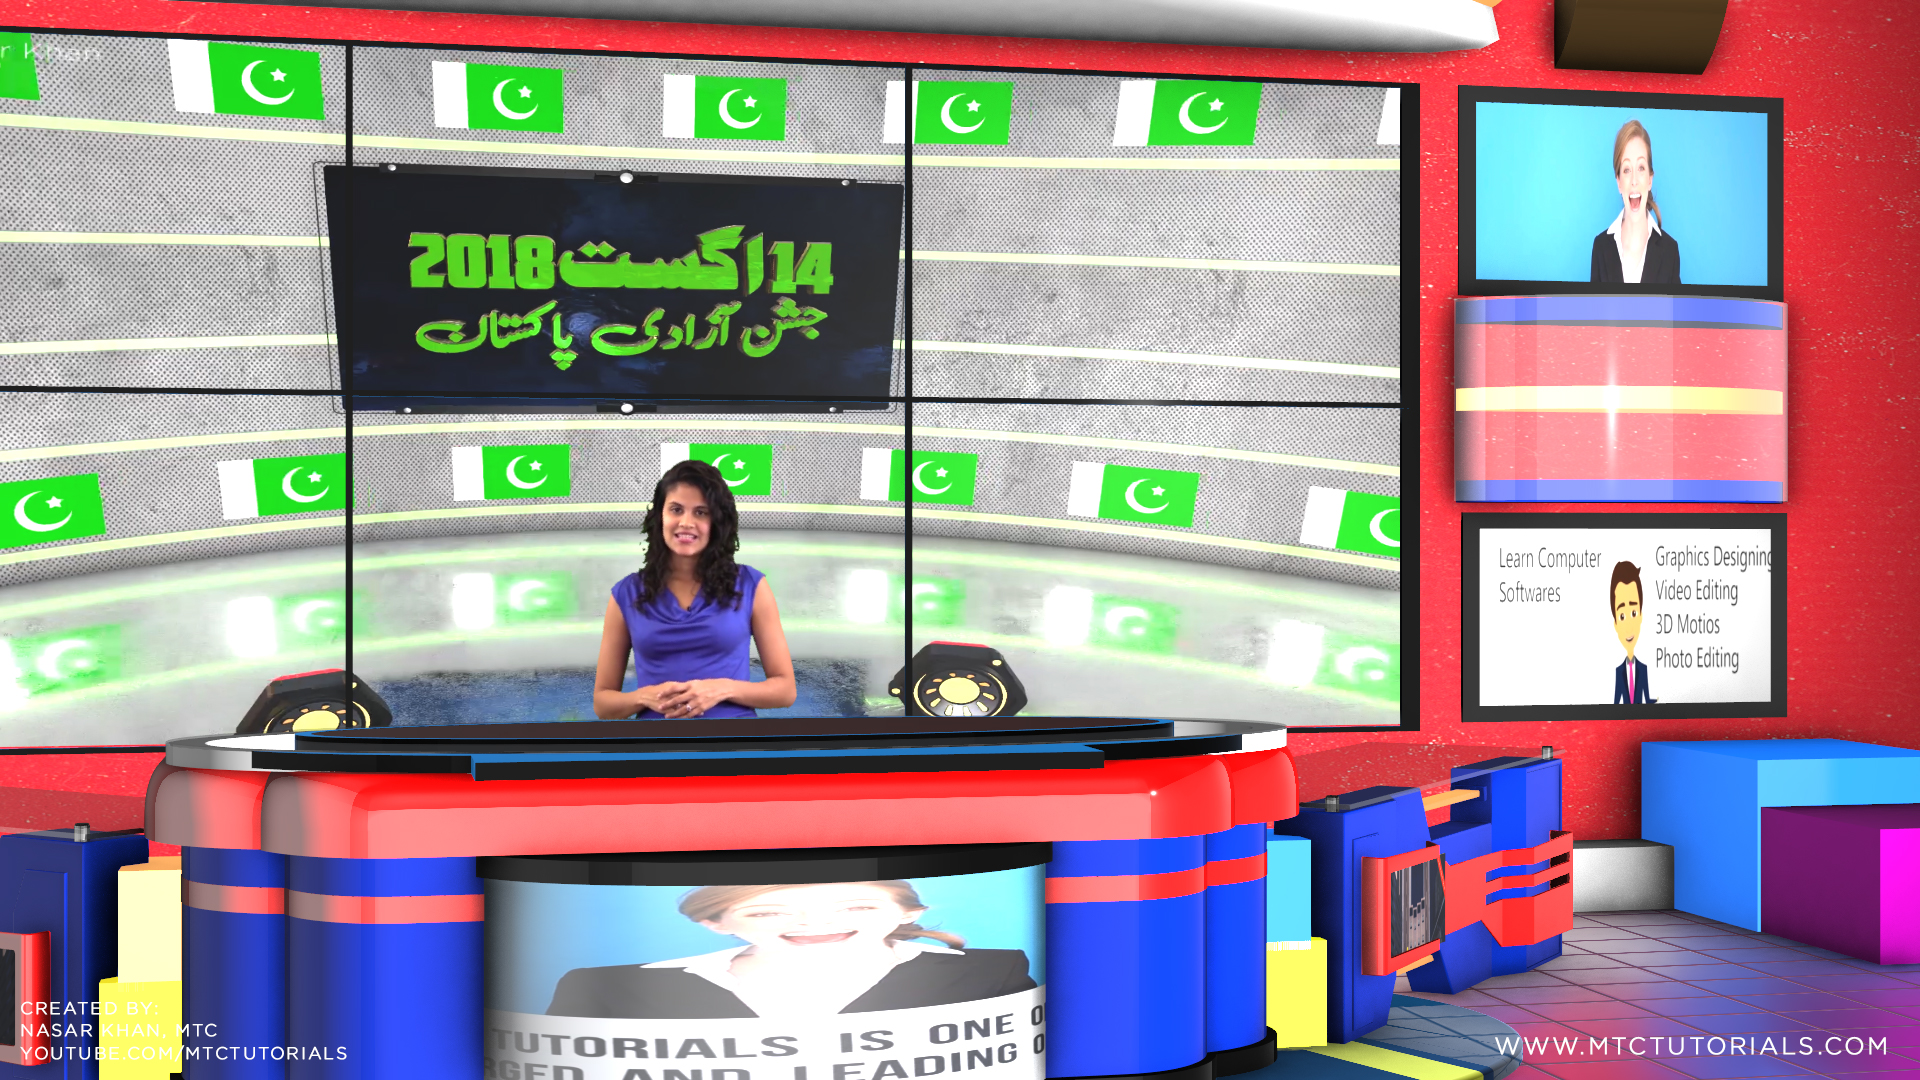 News studio green screen wallpapers